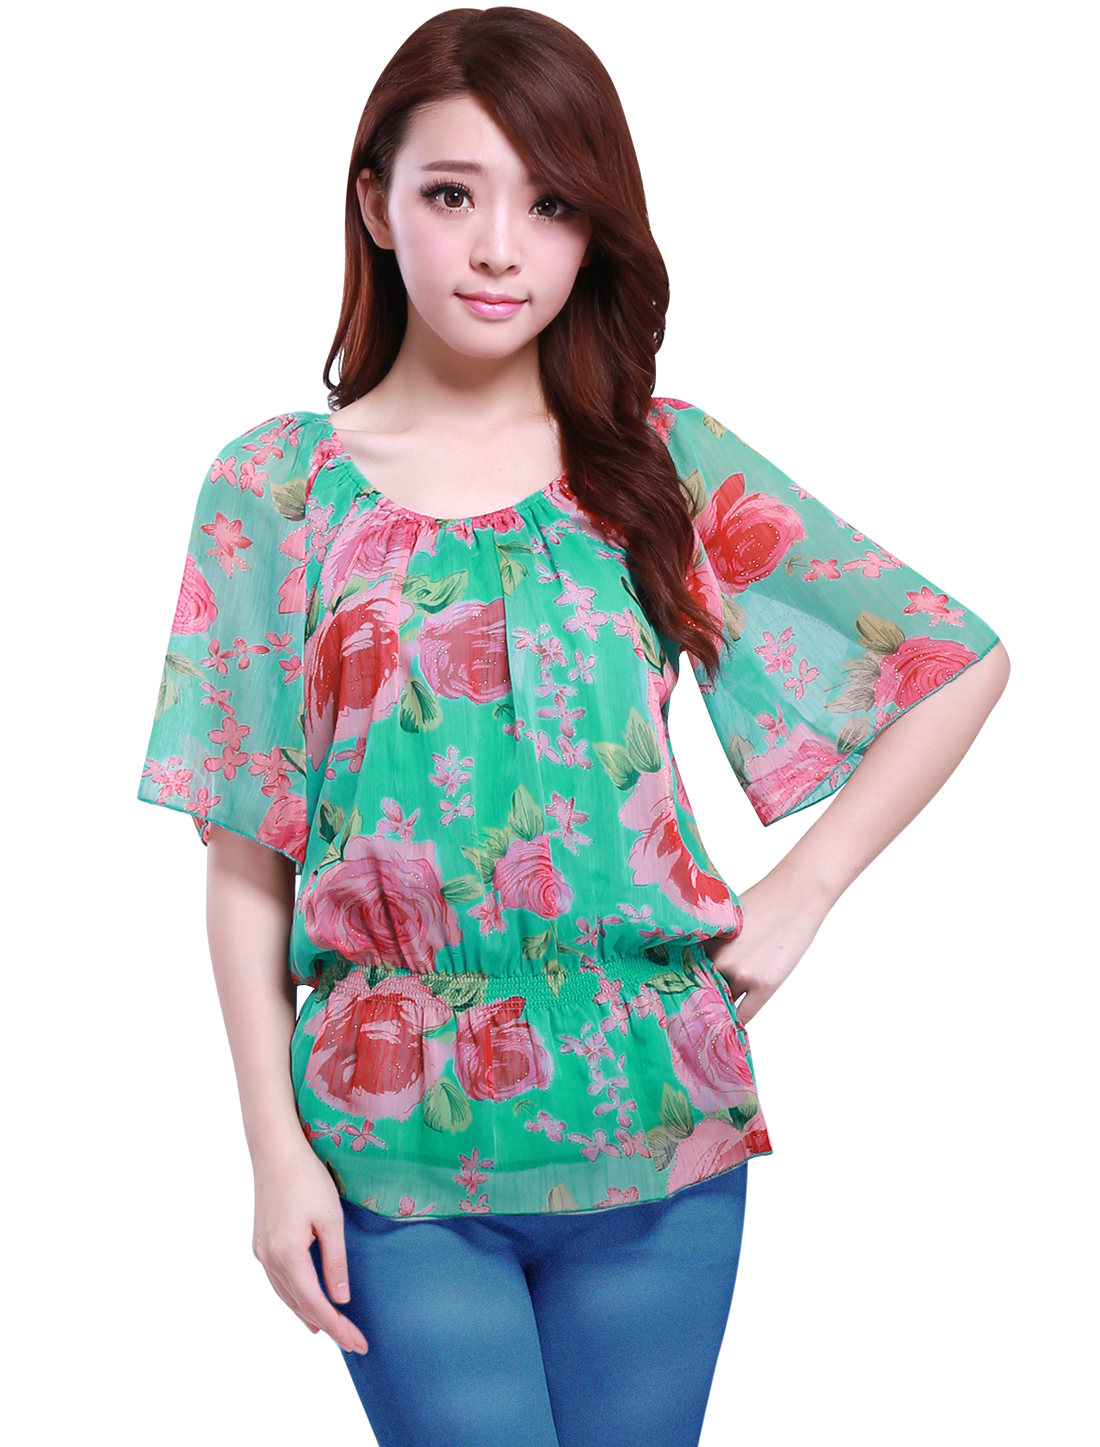 Woman Elastic Scoop Neck Short Sleeve Floral Pattern Pink Green Blouse S